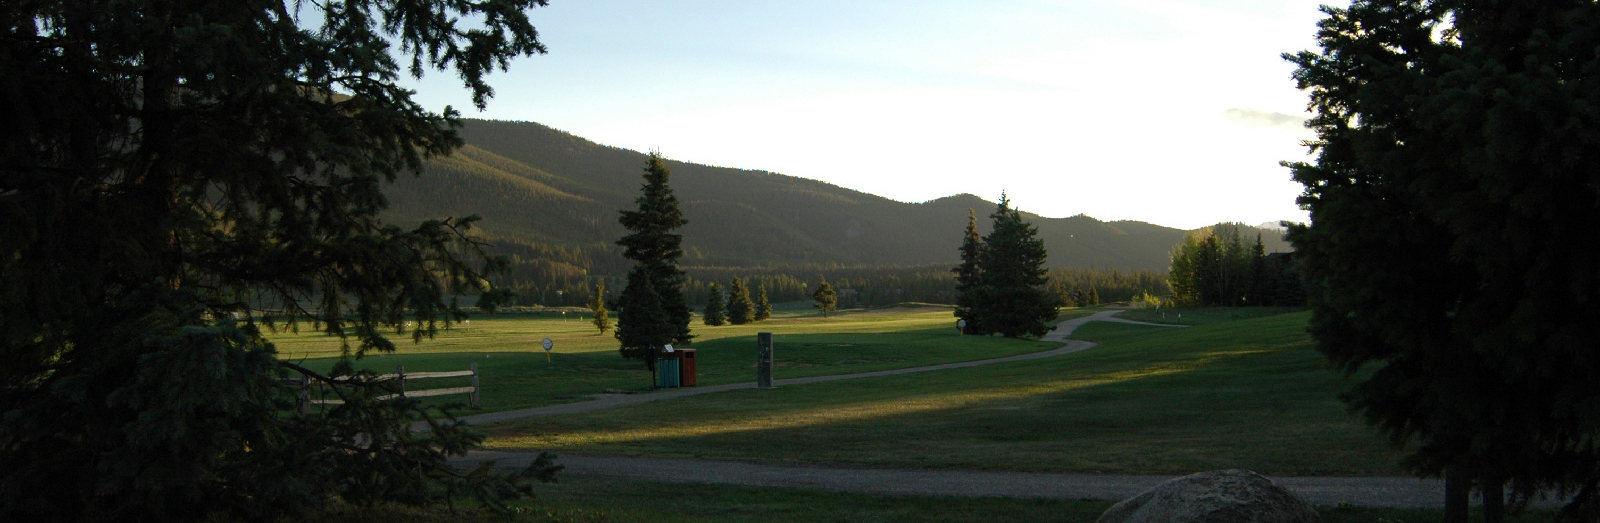 Golfing in Summit County - Keystone pictured